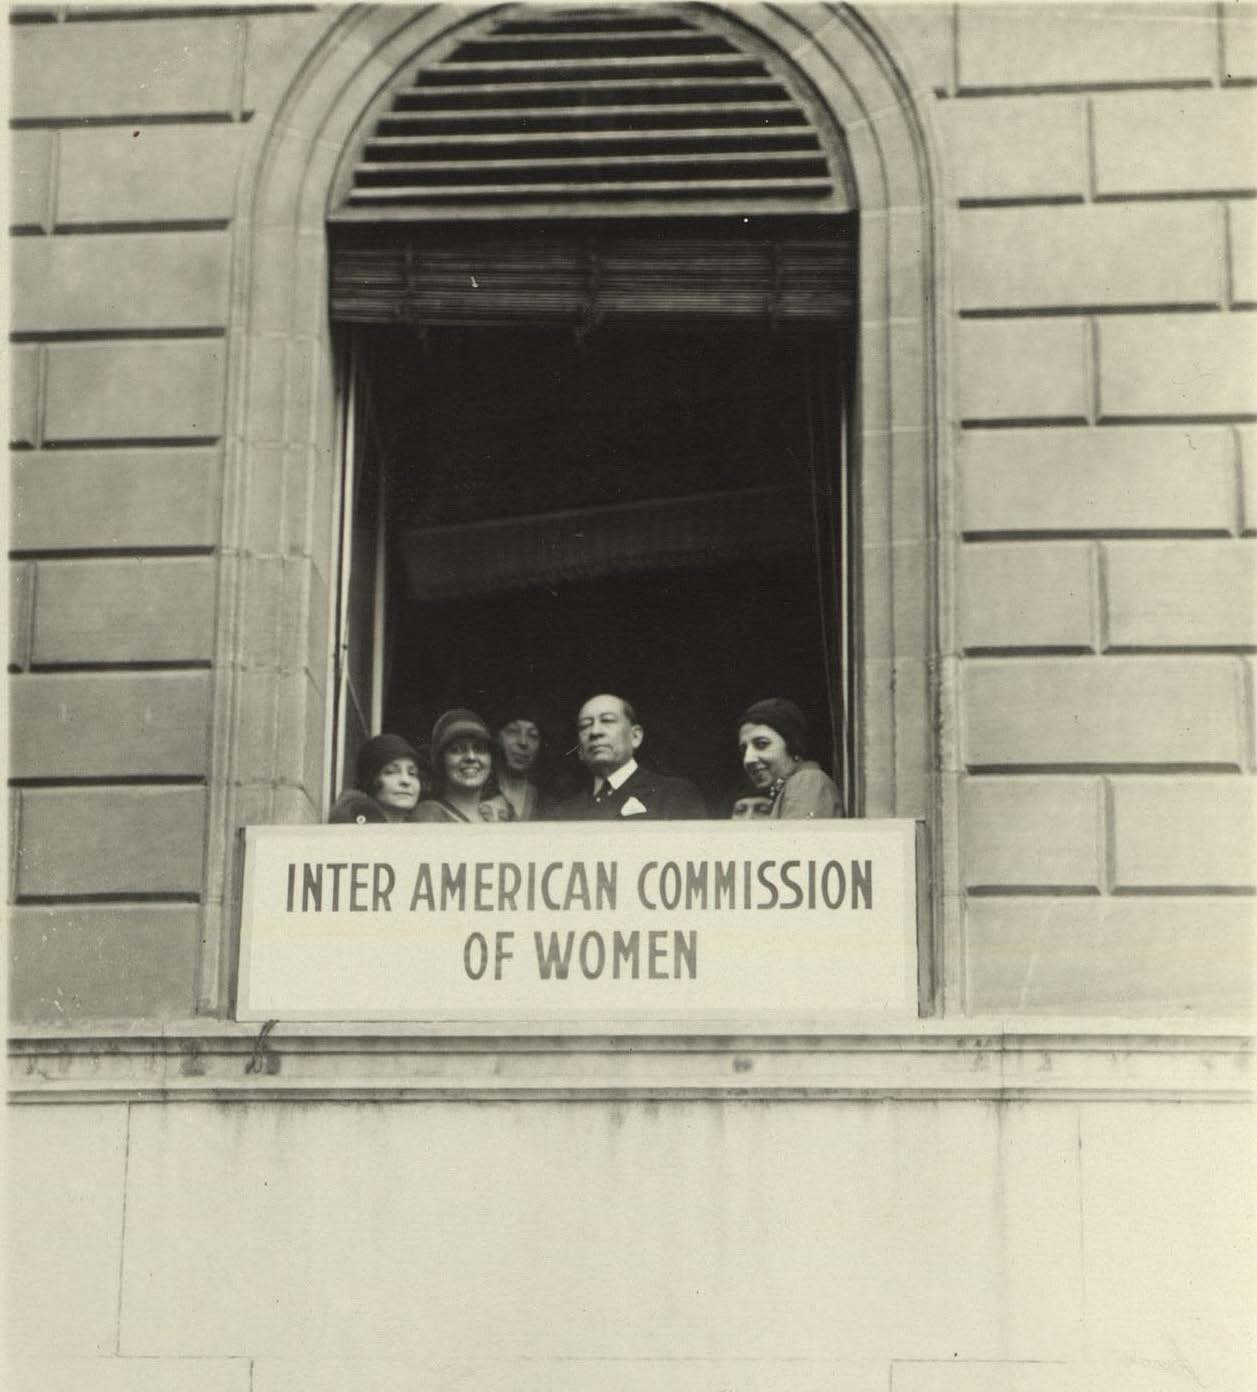 Geneva Headquarters of the Inter American Commission of Women. c. 1930